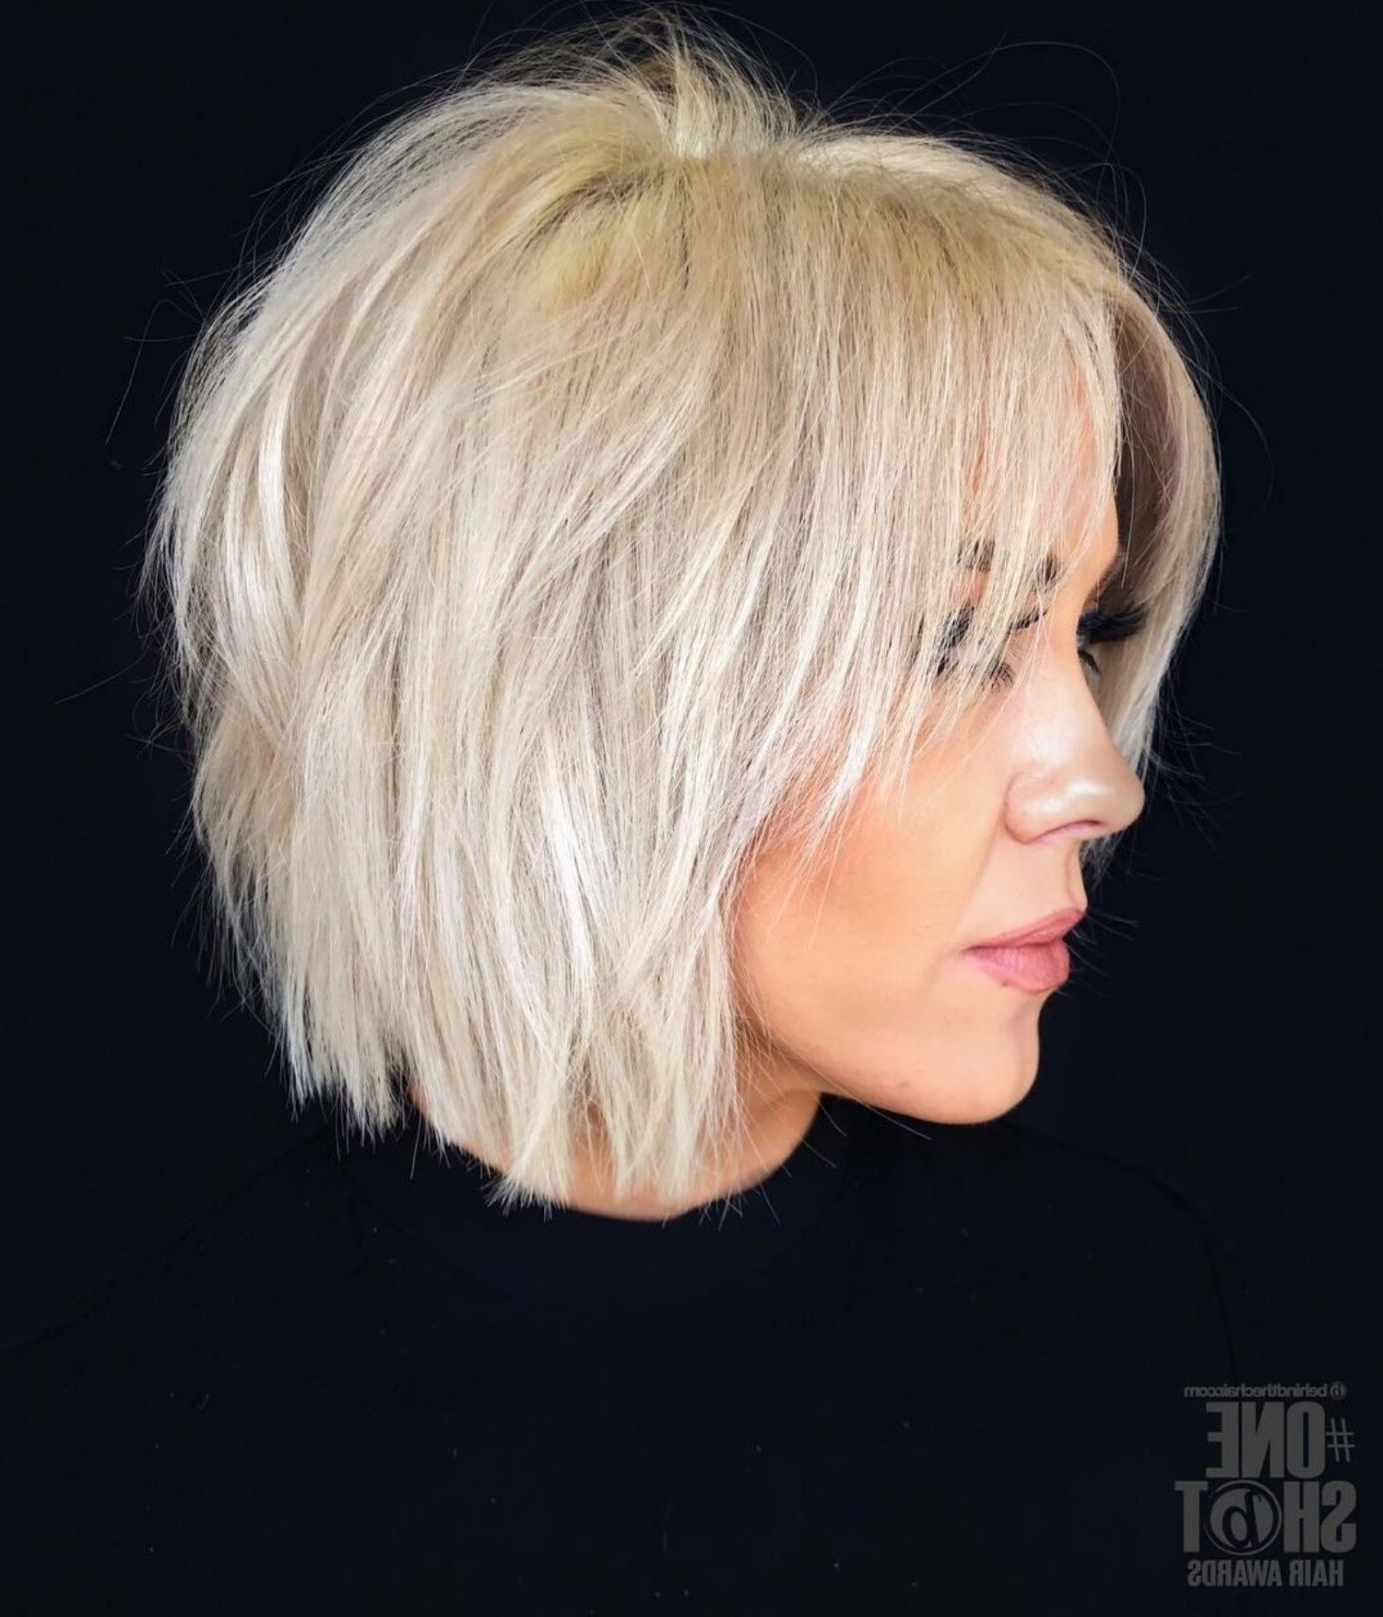 60 Most Universal Modern Shag Haircut Solutions In 2019 Within Shaggy Blonde Bob Hairstyles With Bangs (View 8 of 20)